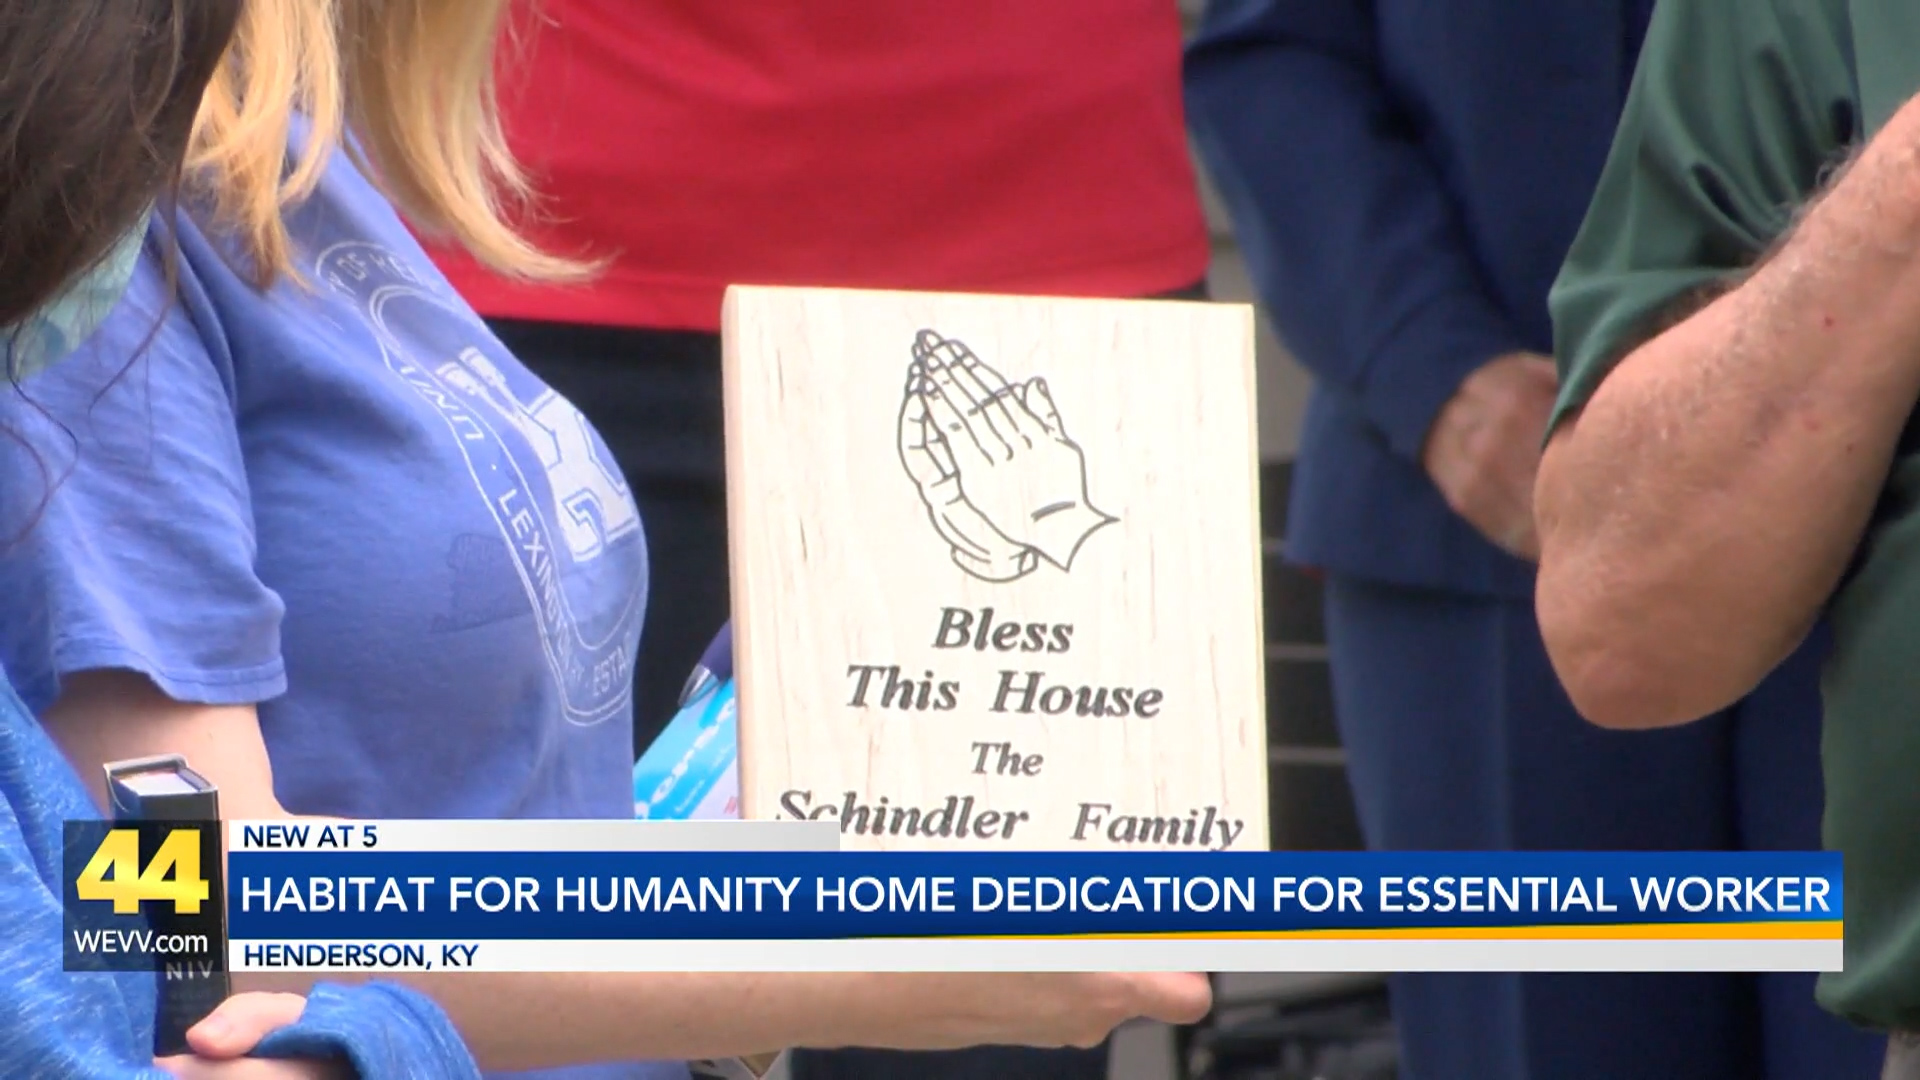 Image for Habitat For Humanity Home Dedication